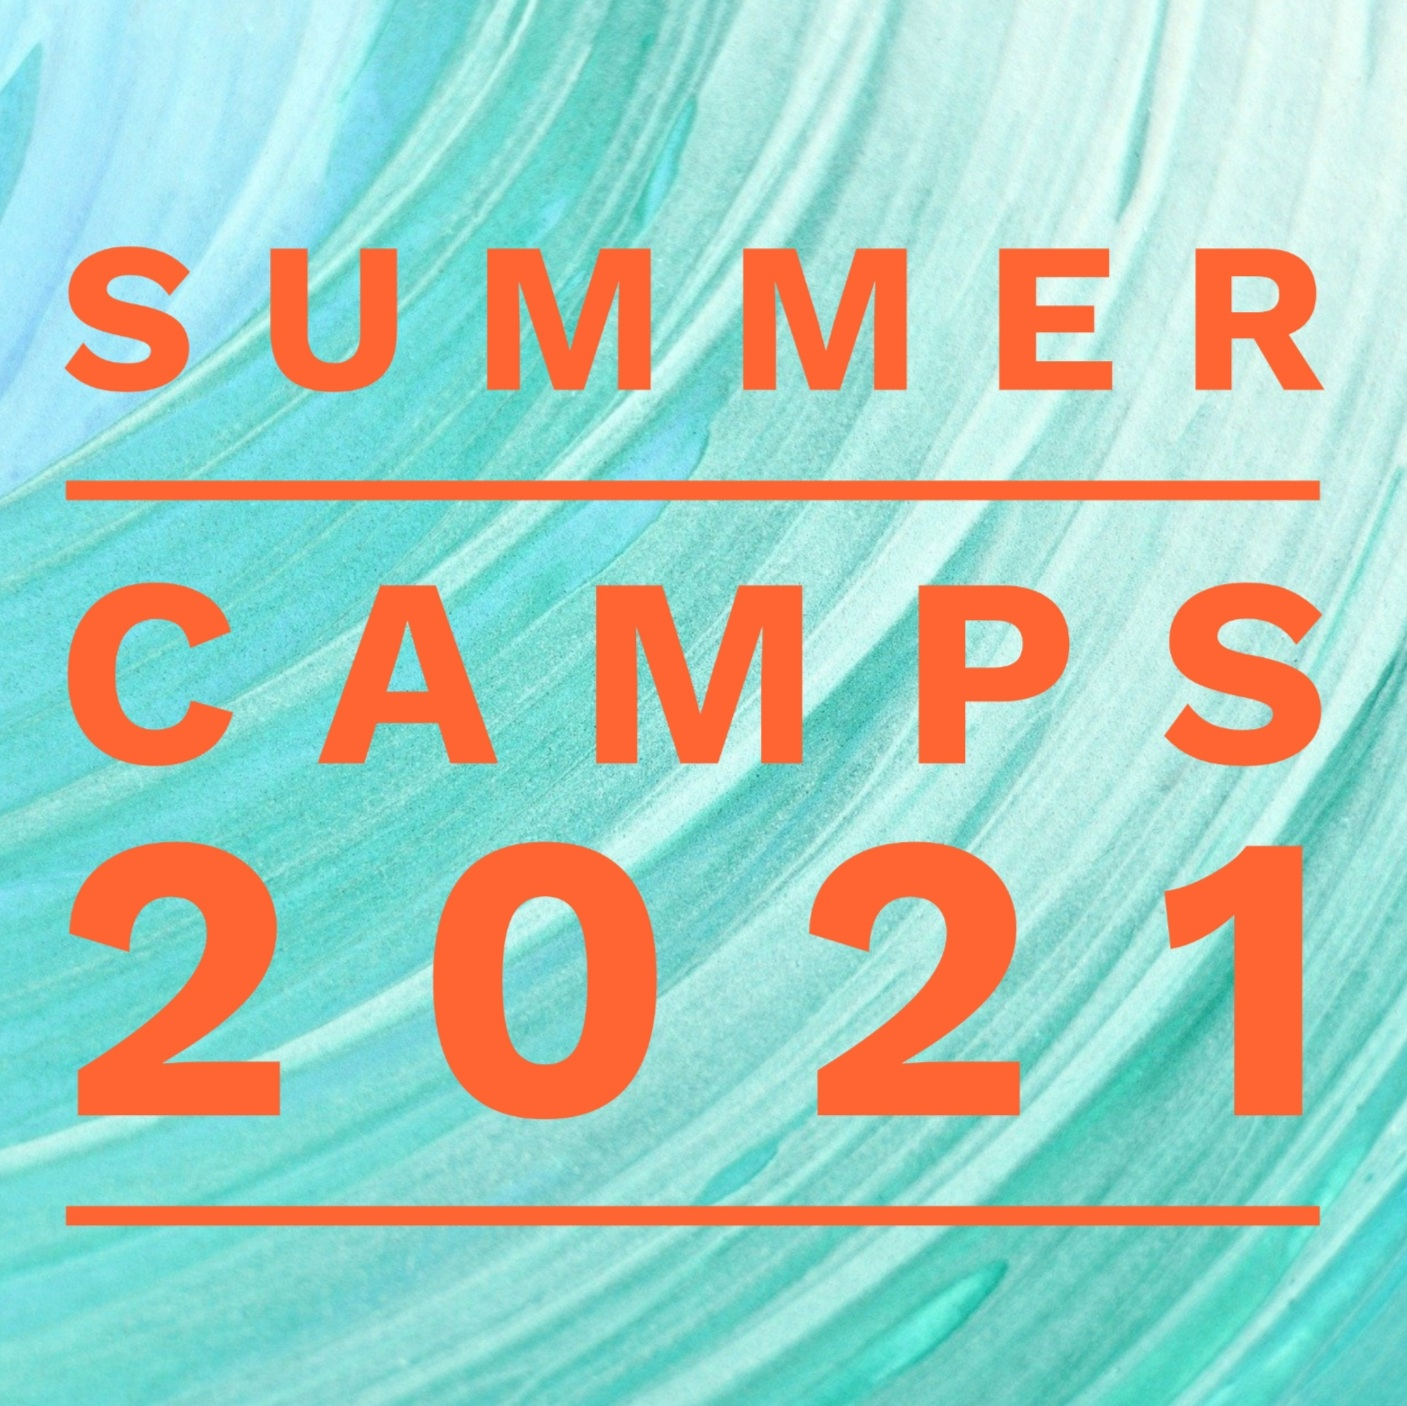 Summer Camp 2021 Image